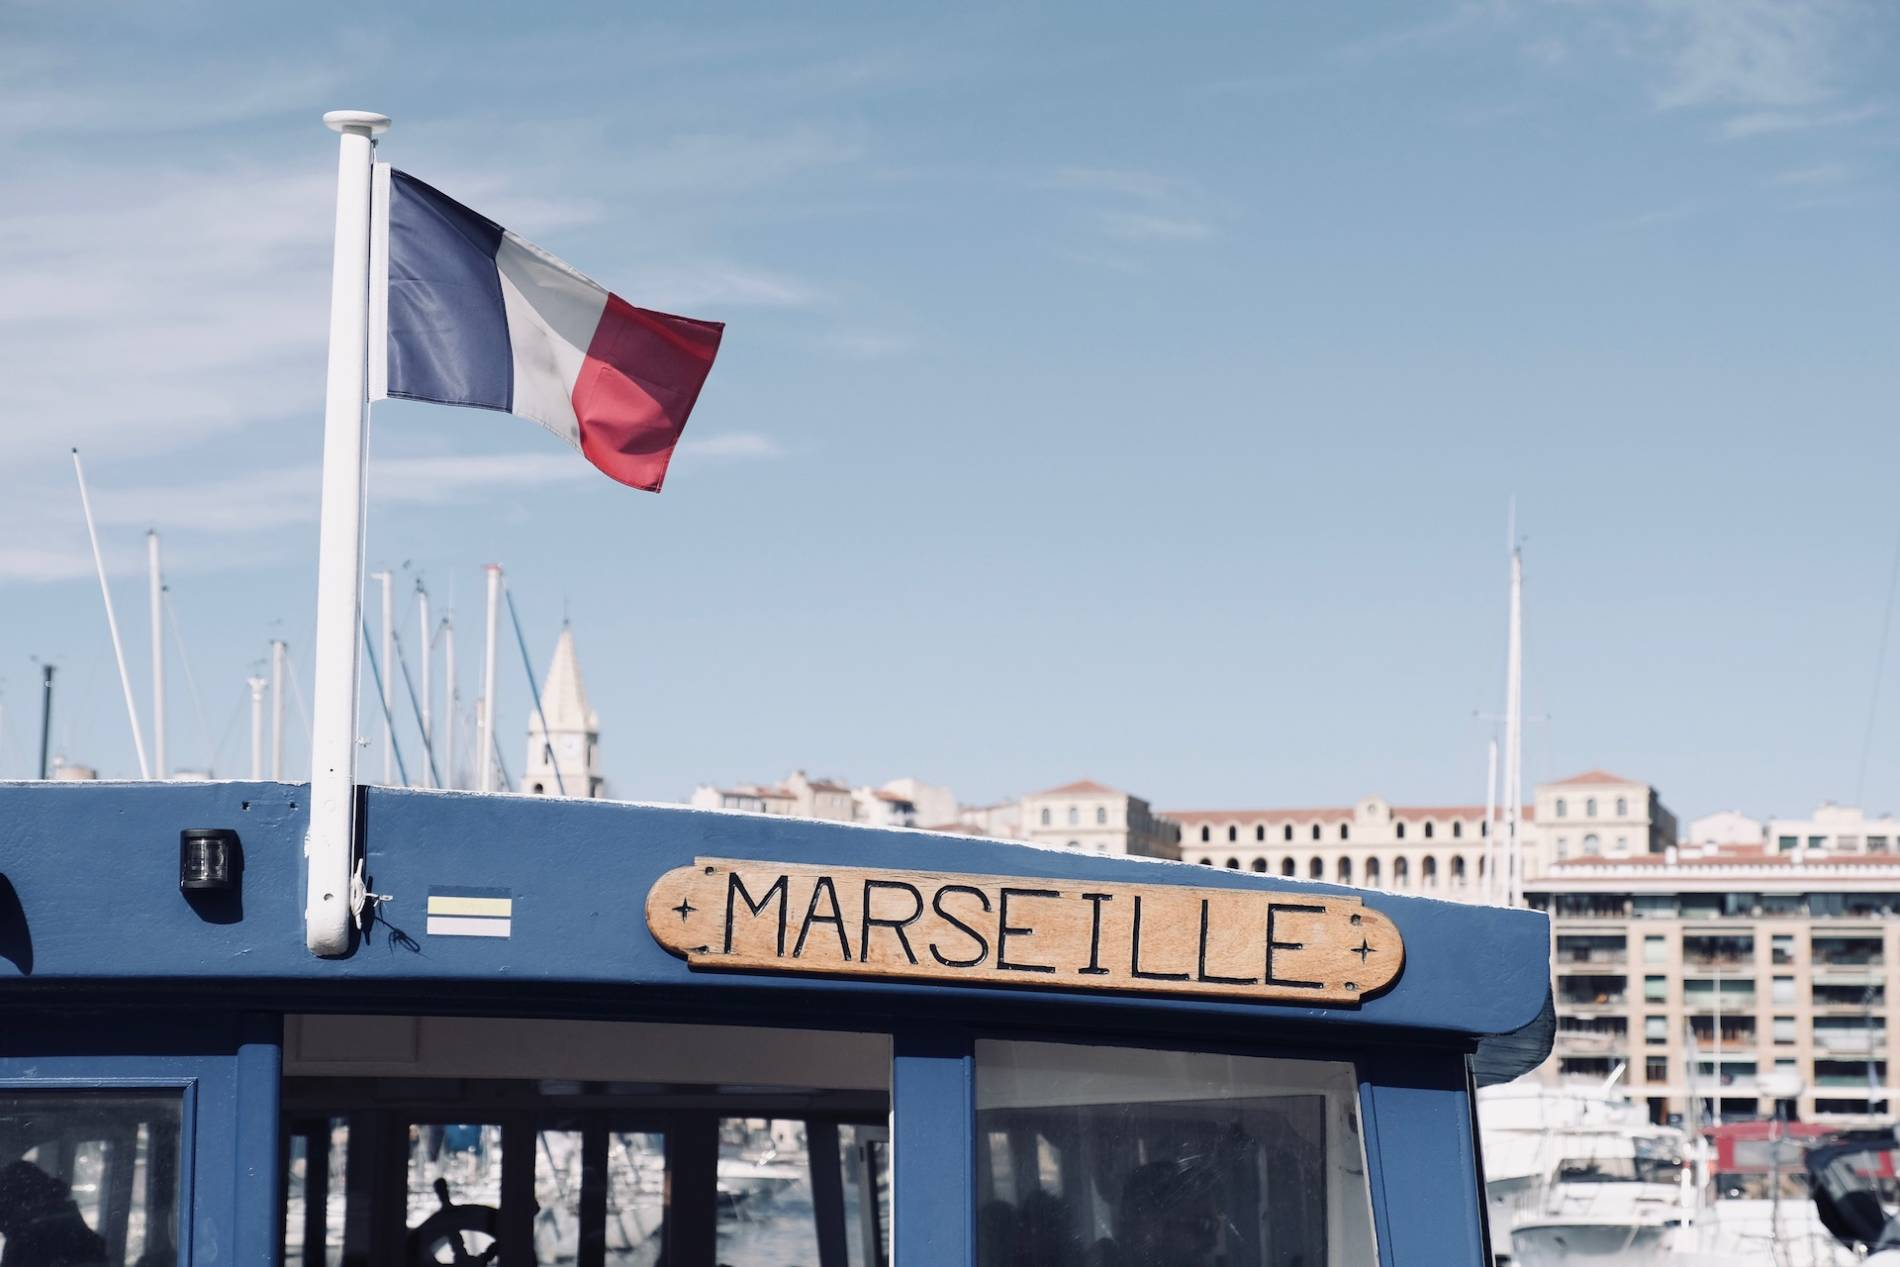 marseille-ferry-boat